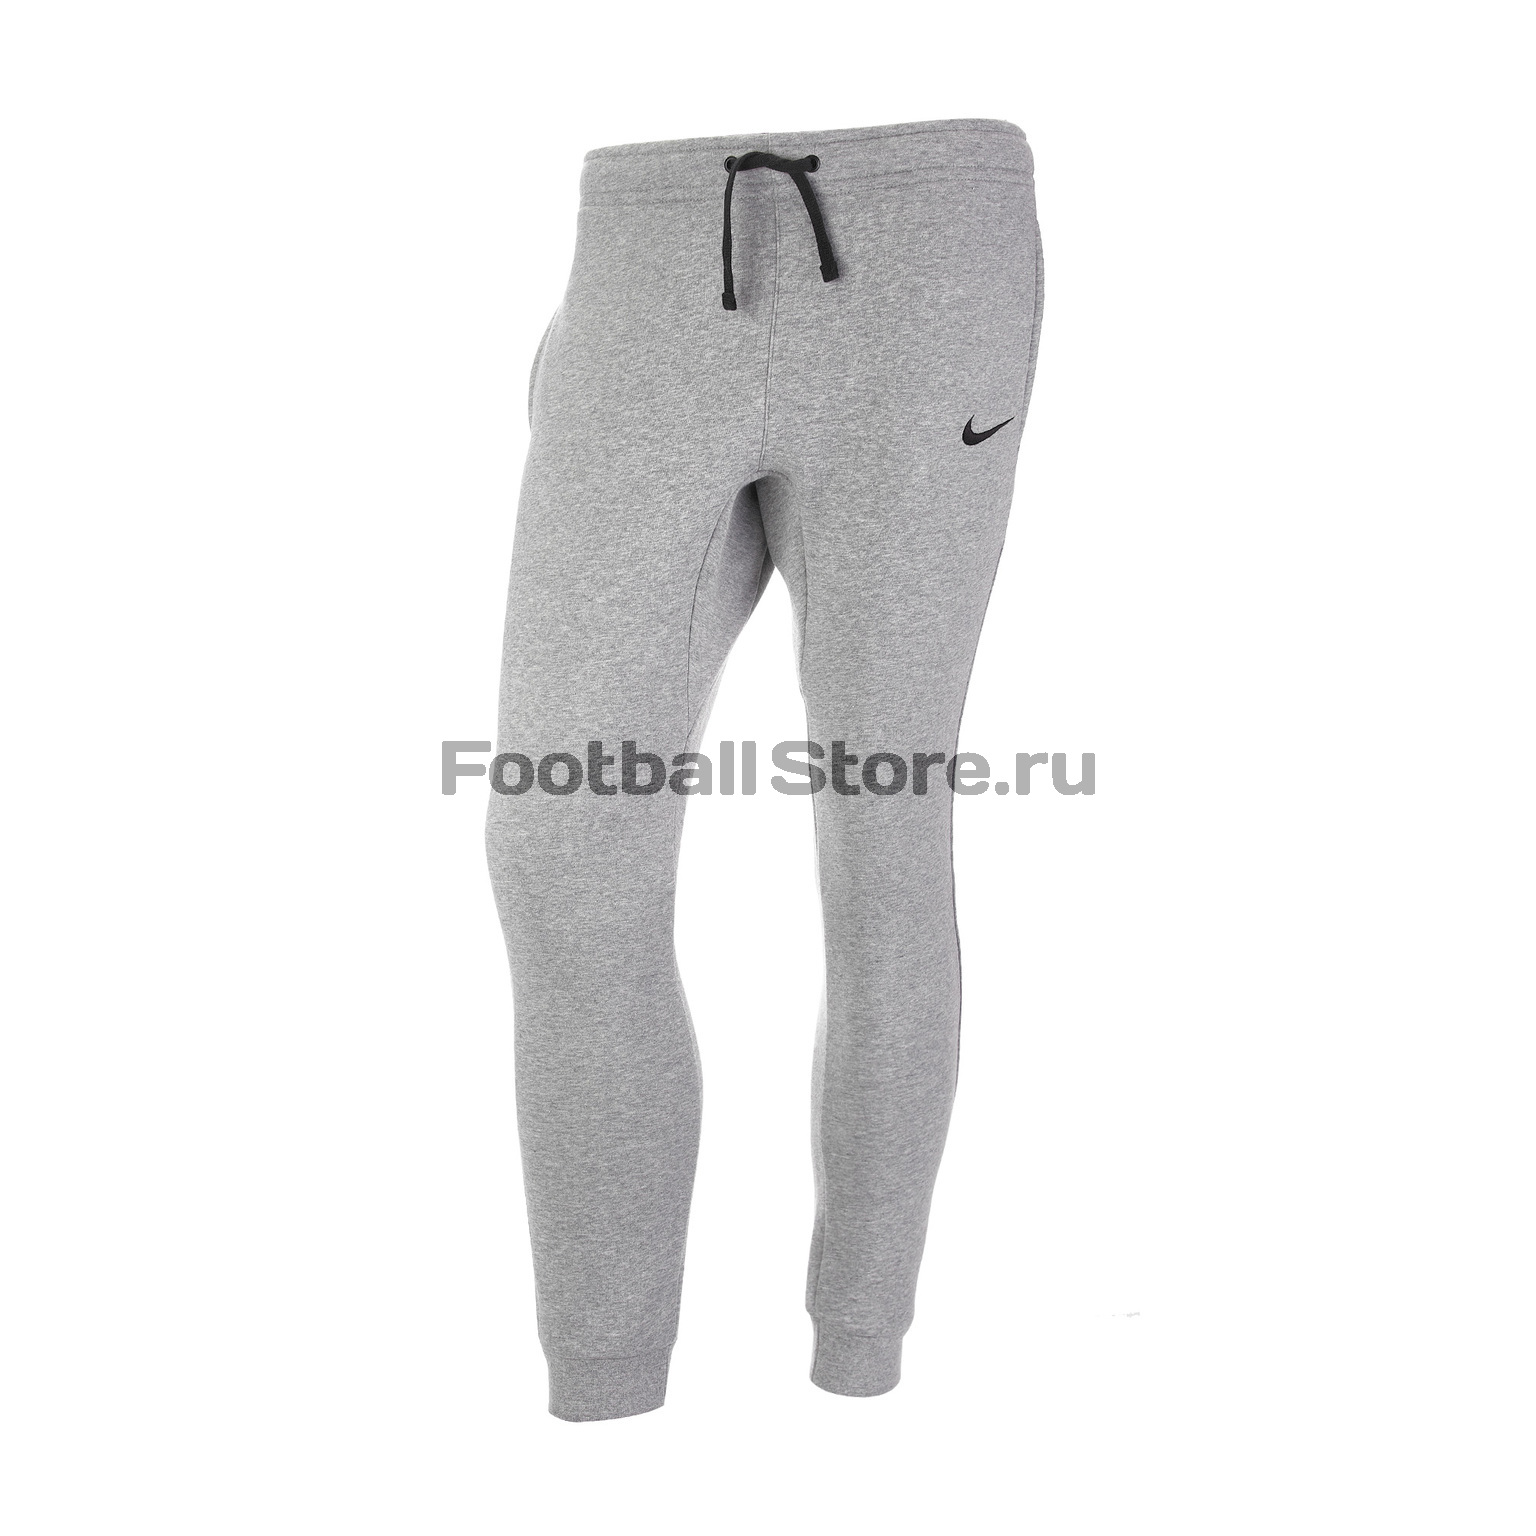 Брюки Nike Pant Fleece Club19 AJ1468-063